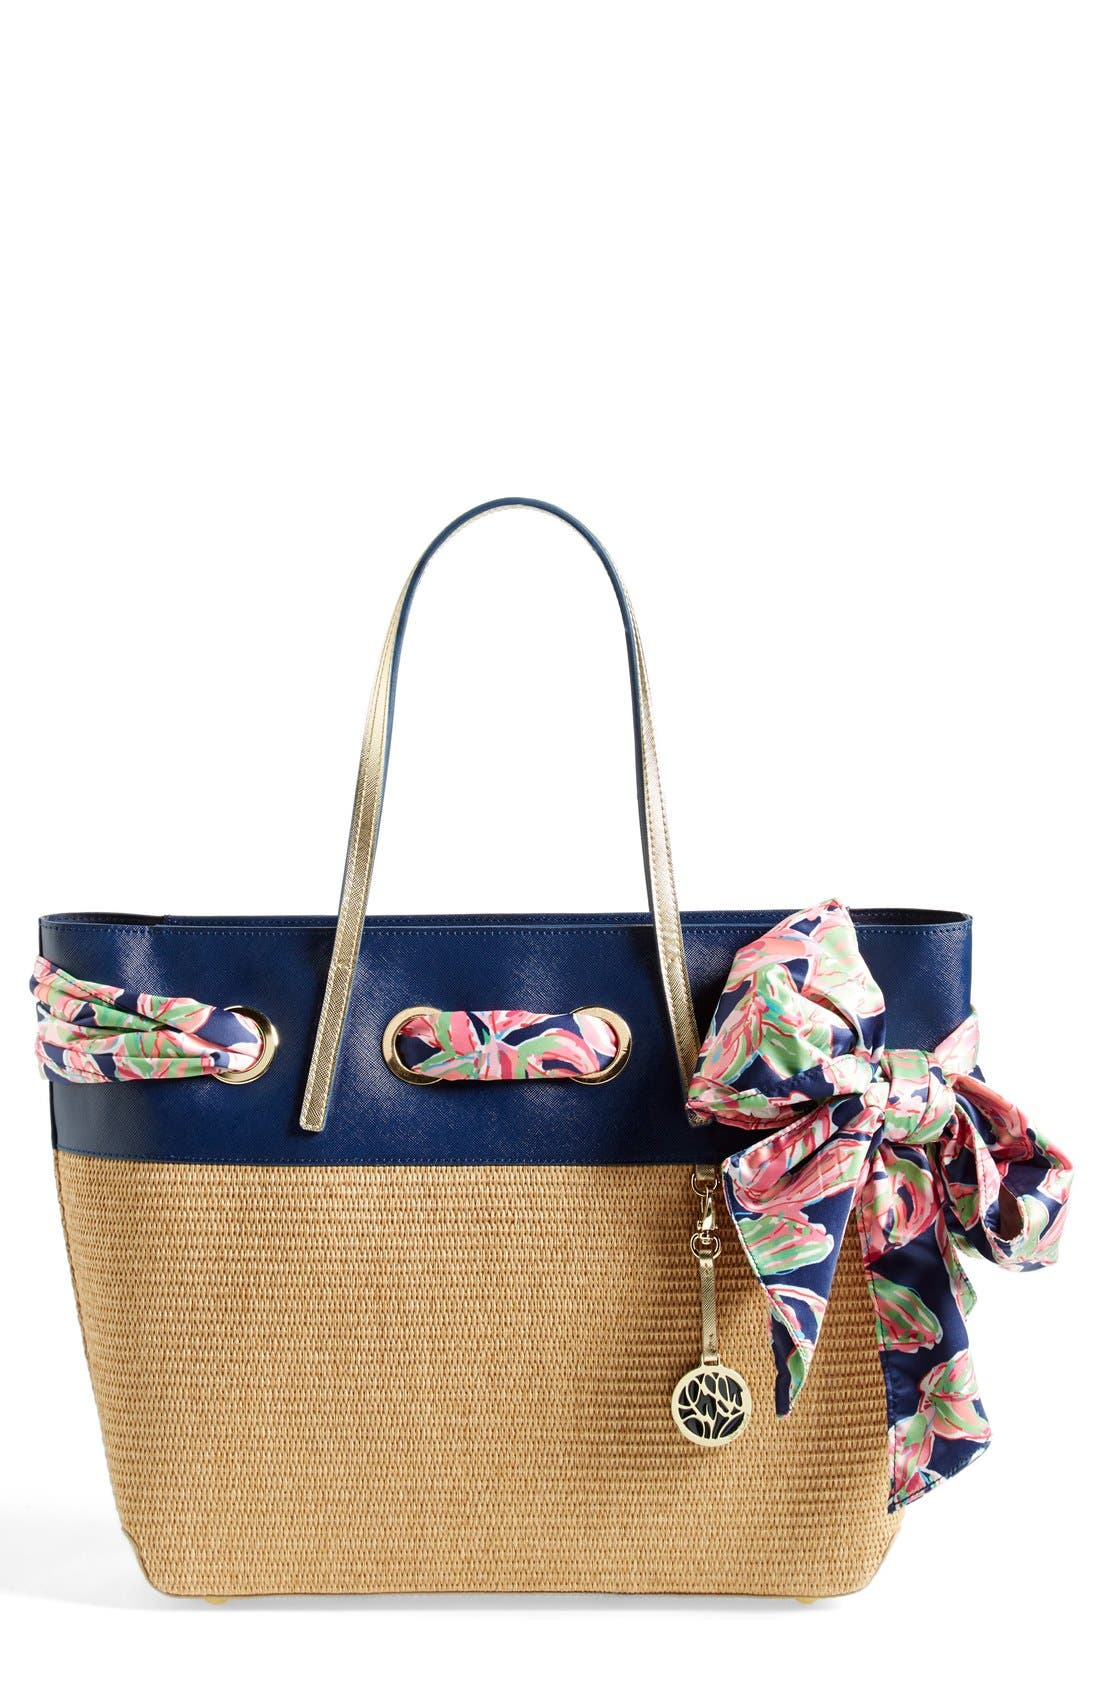 Alternate Image 1 Selected - Lilly Pulitzer® 'Resort' Straw Tote